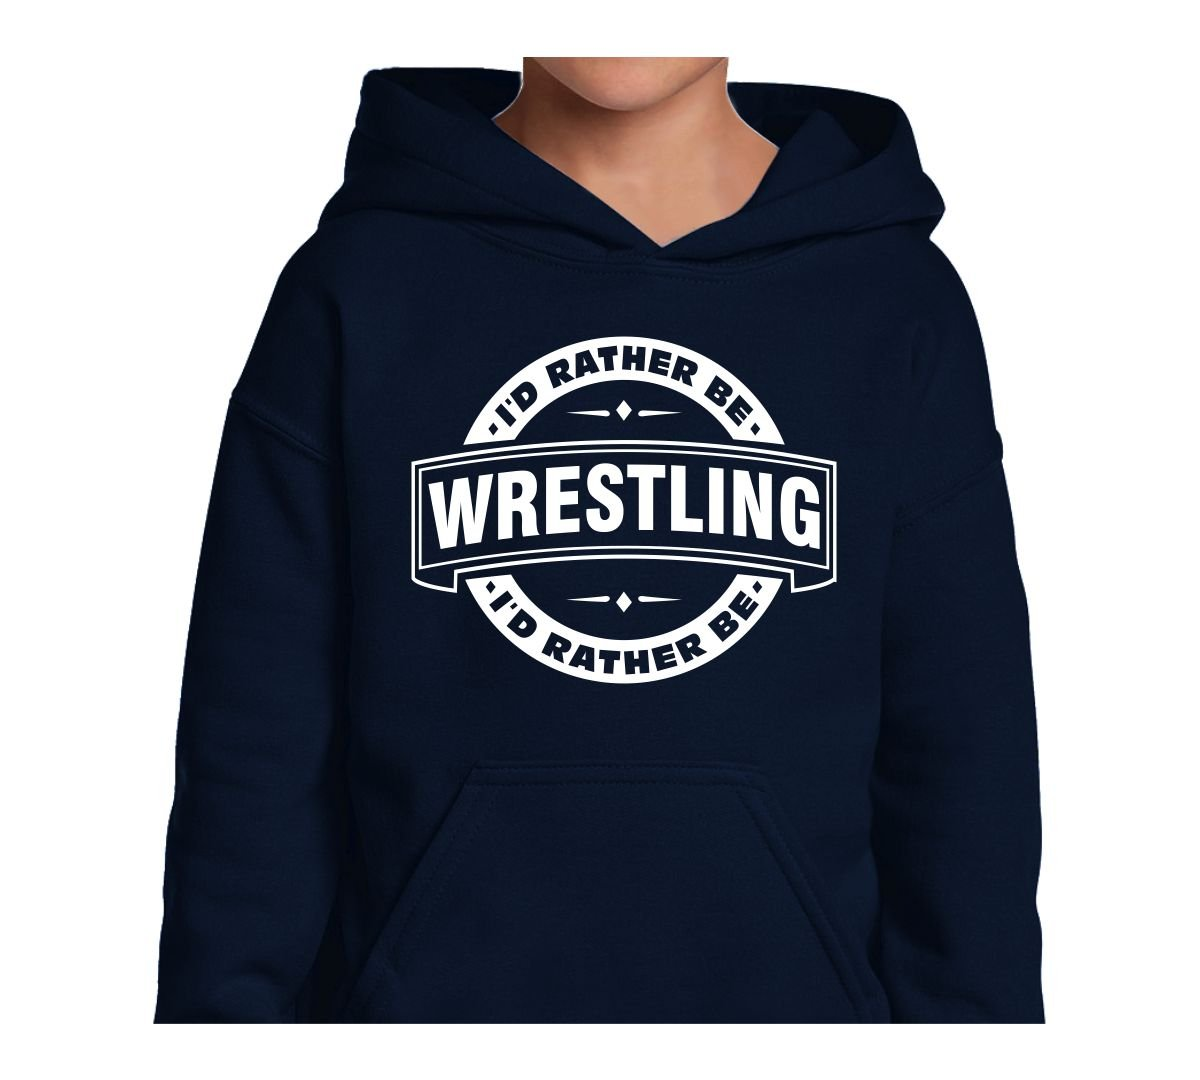 Mighty Ambitious Youth Hoodie ID Rather Be Wrestling (Badge) Medium Funny Kids